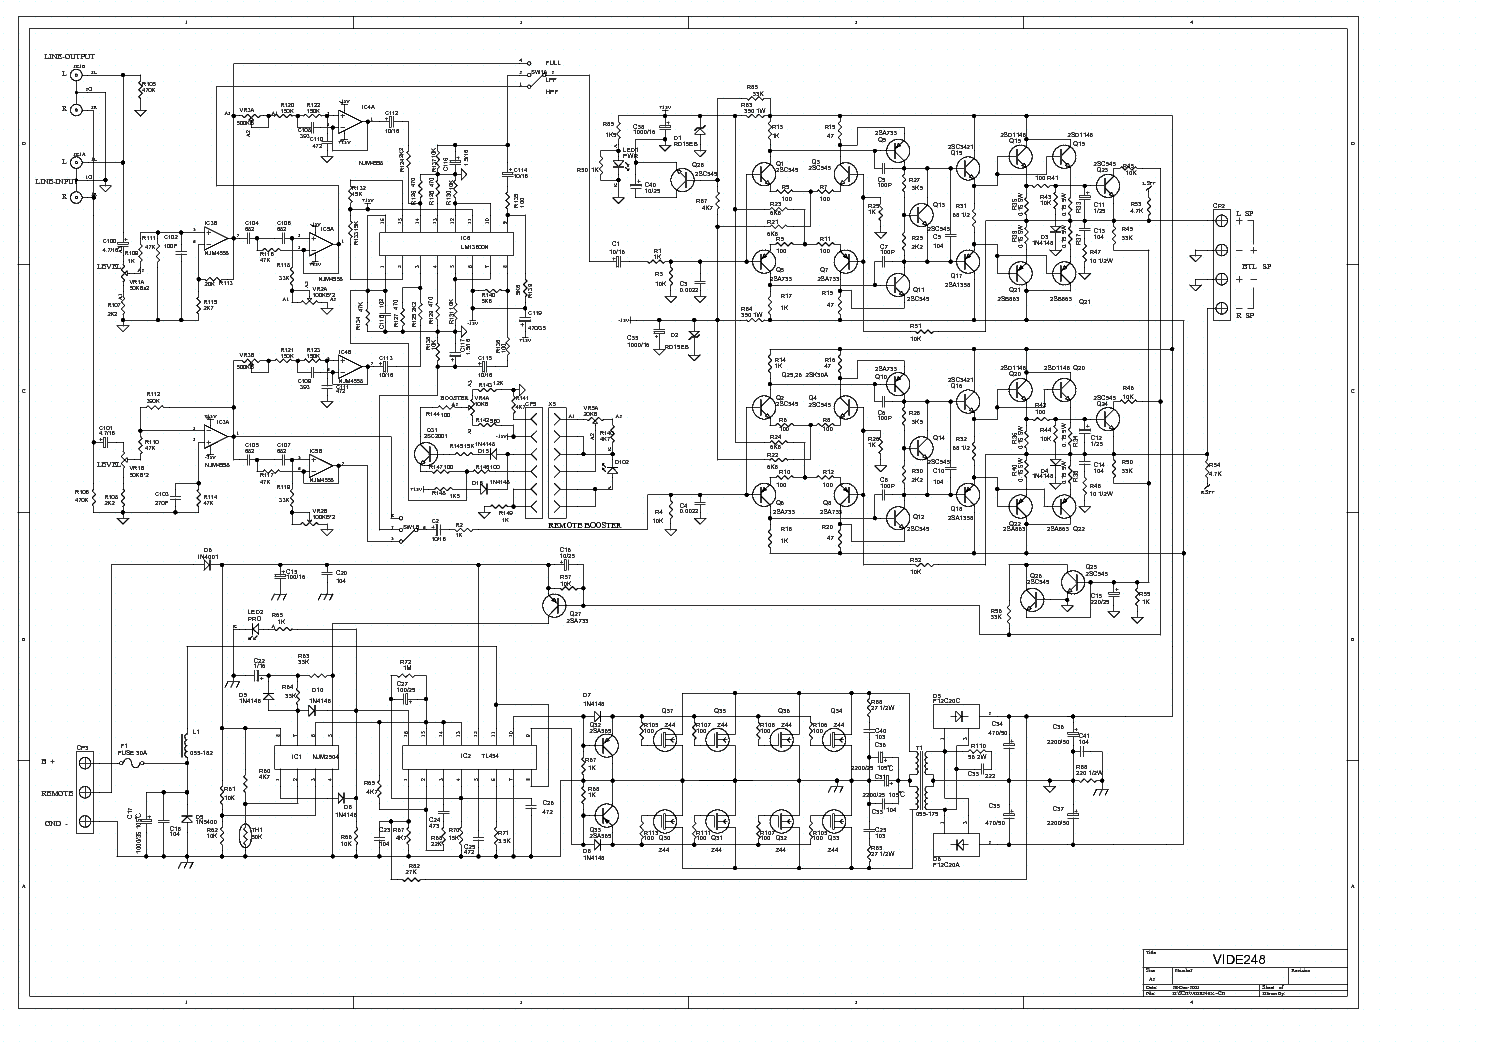 lanzar_vibe248_car_amplifier_sch.pdf_1 lanzar wiring diagram lanzar maxp154d wiring diagram \u2022 wiring kia sportage wiring diagram service manual at soozxer.org